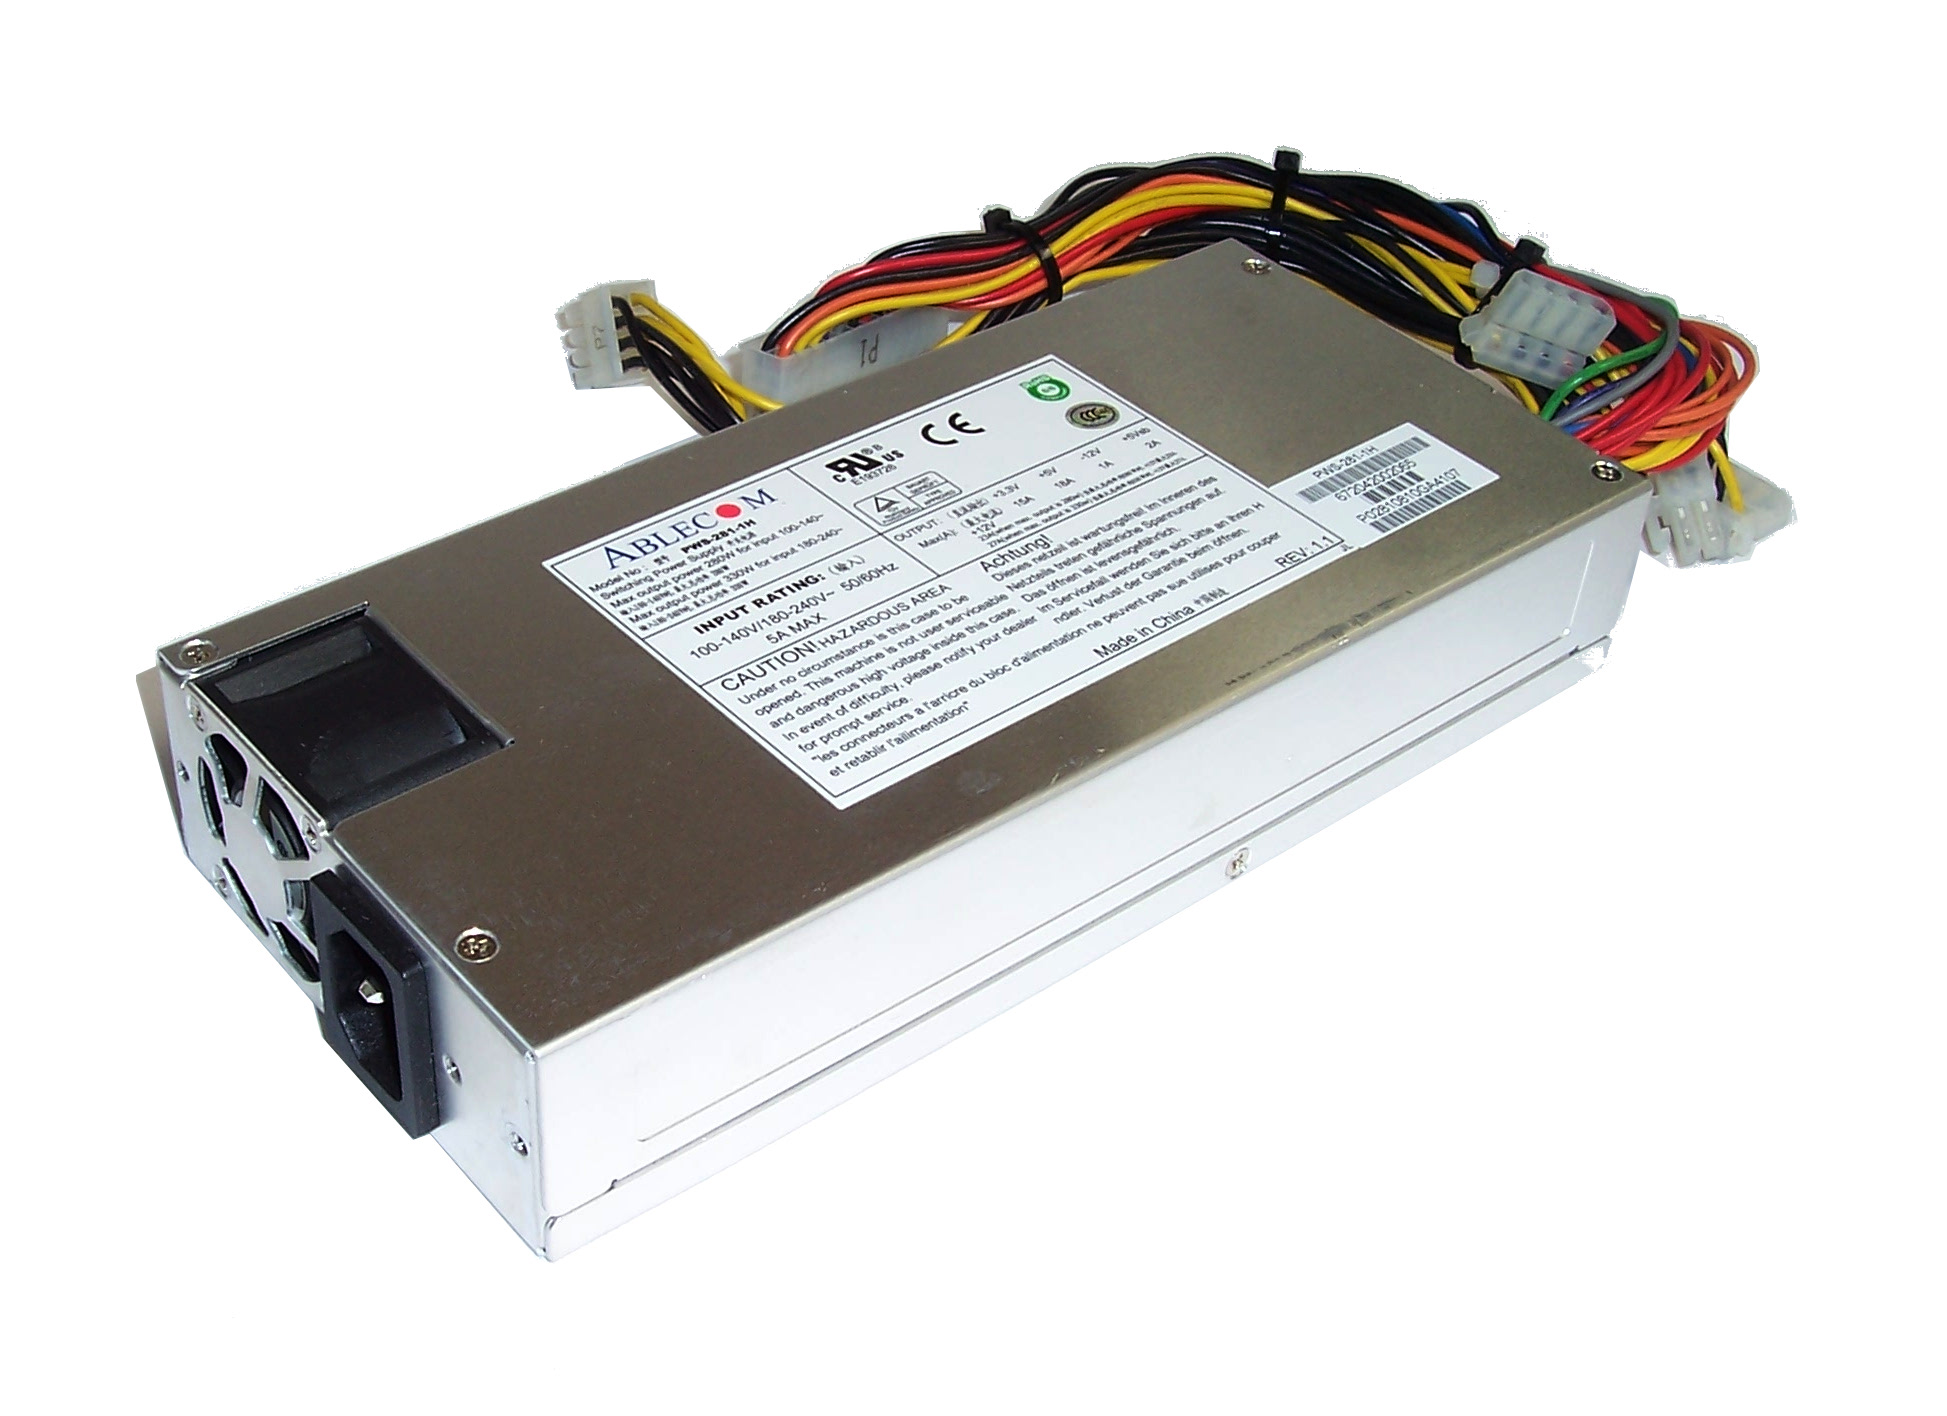 SuperMicro Ablecom PWS-281-1H 100-240V 50-60Hz 5A 280W Power Supply